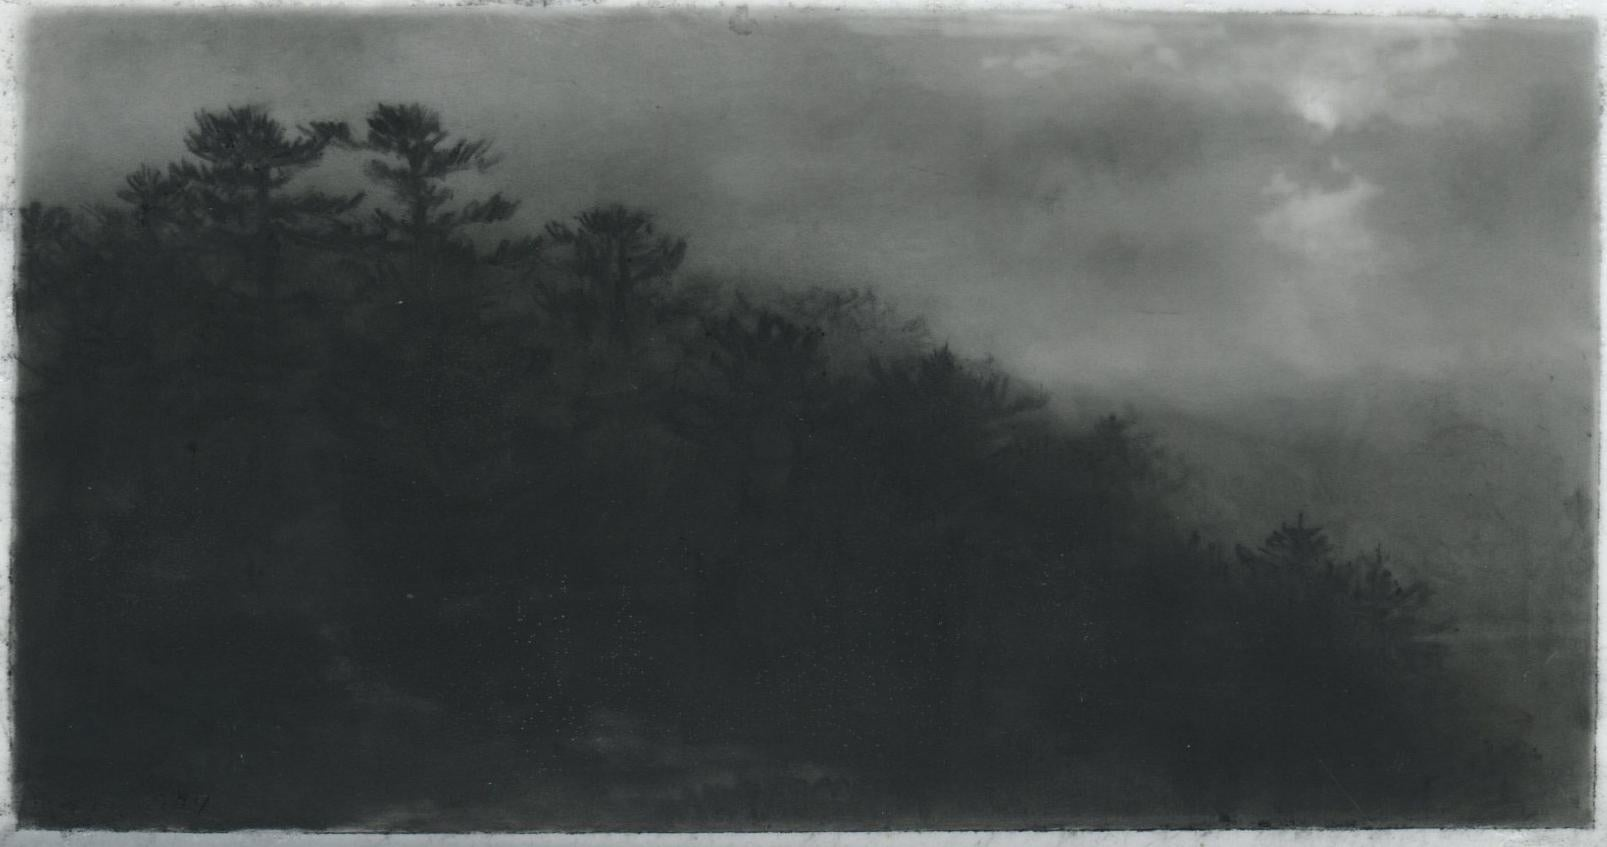 Hill path, night, black and white realist northeastern landscape, charcoal